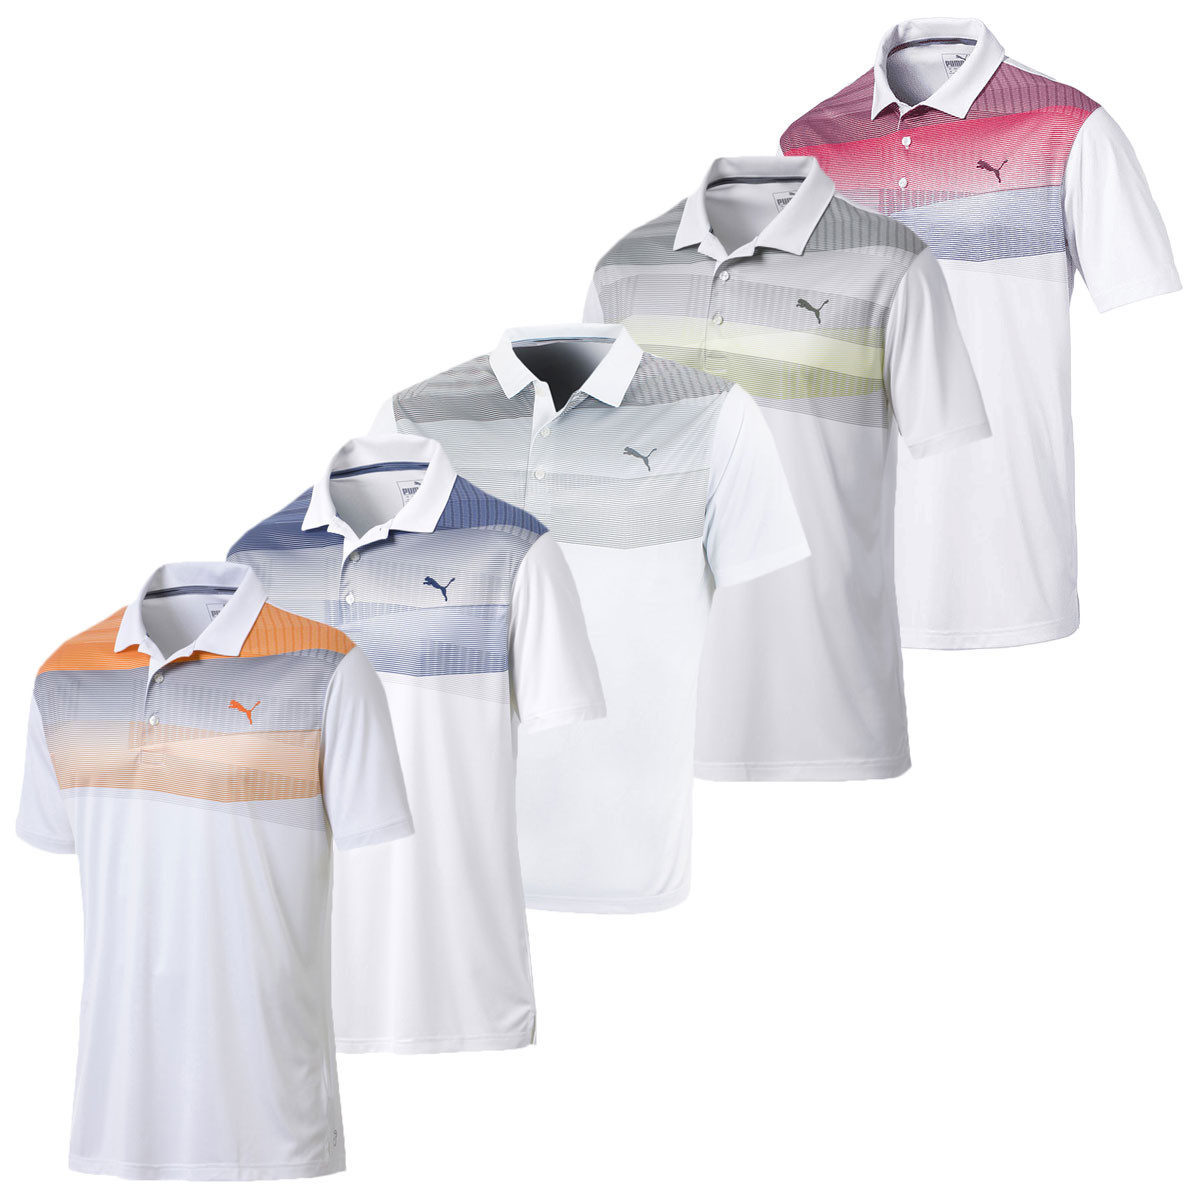 1a17ea1d SHARE THIS ITEM WITH YOUR FRIENDS. Watch video Size Guide. Description;  Technology; Reviews0. Description. The Puma Golf Mens Pwrcool Refraction  Polo ...